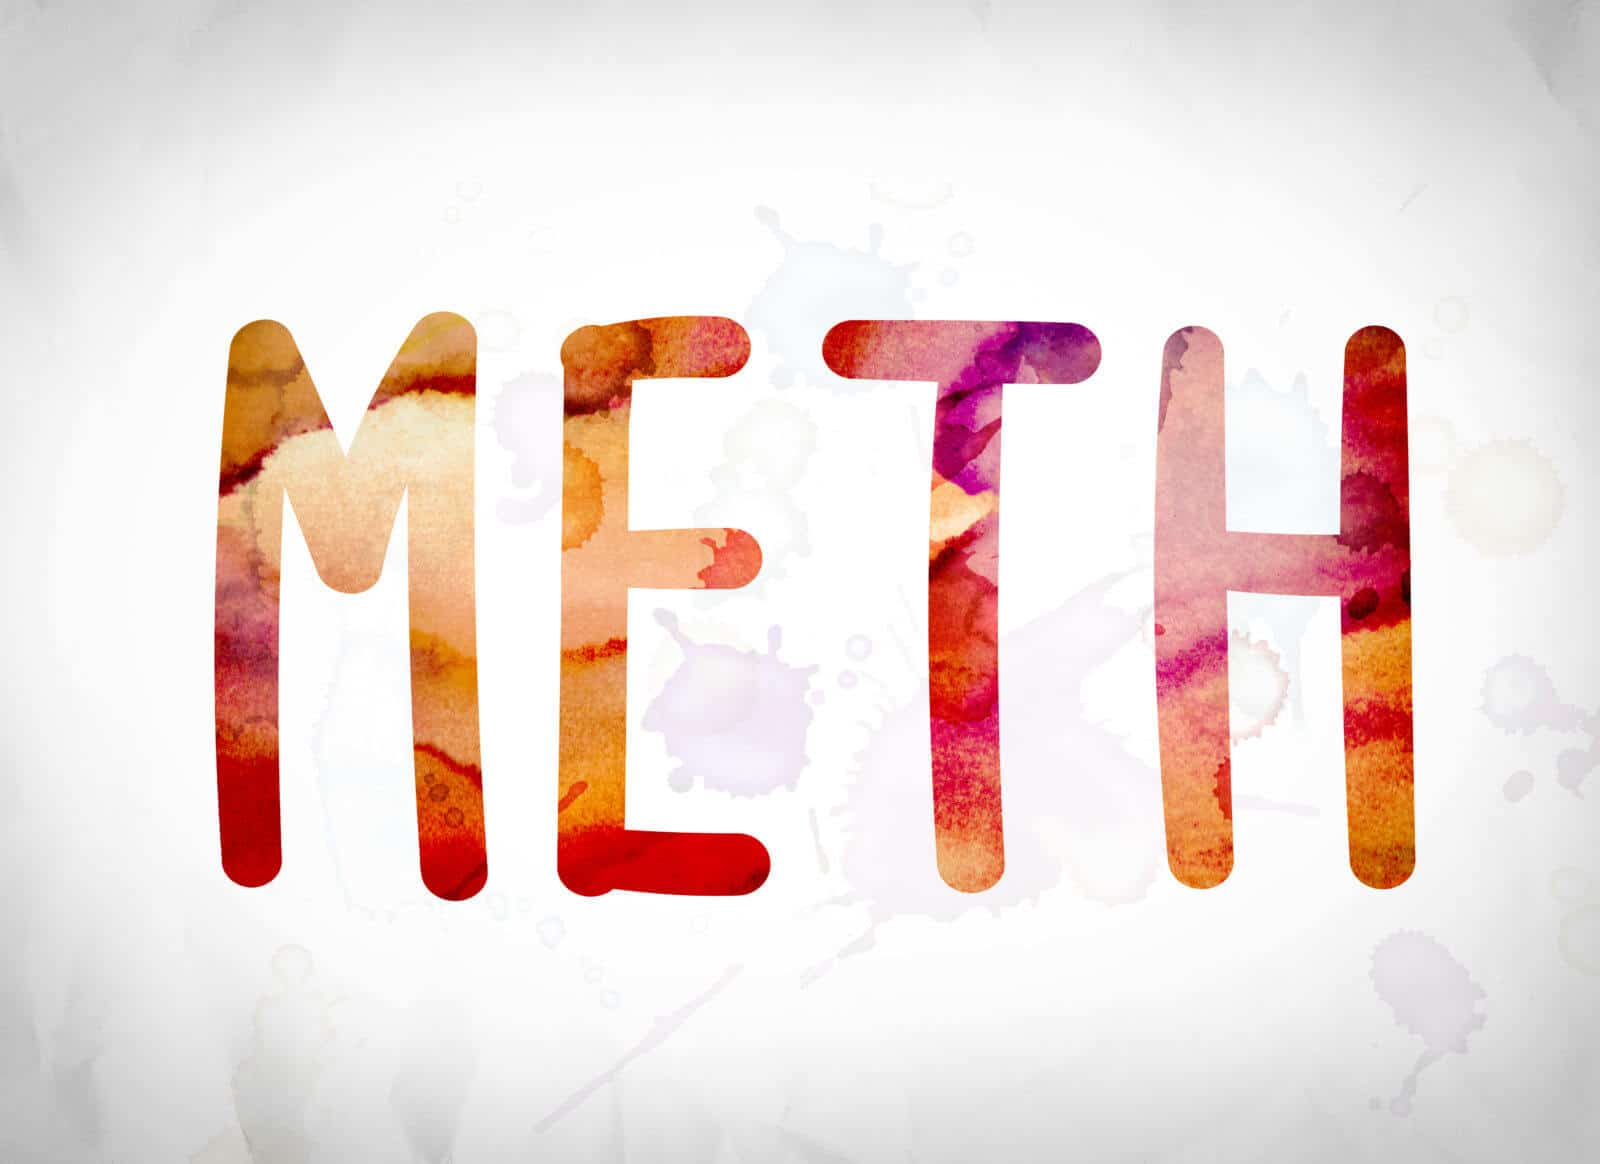 Shooting Meth - Meth Addiction Treatment - Addiction Center